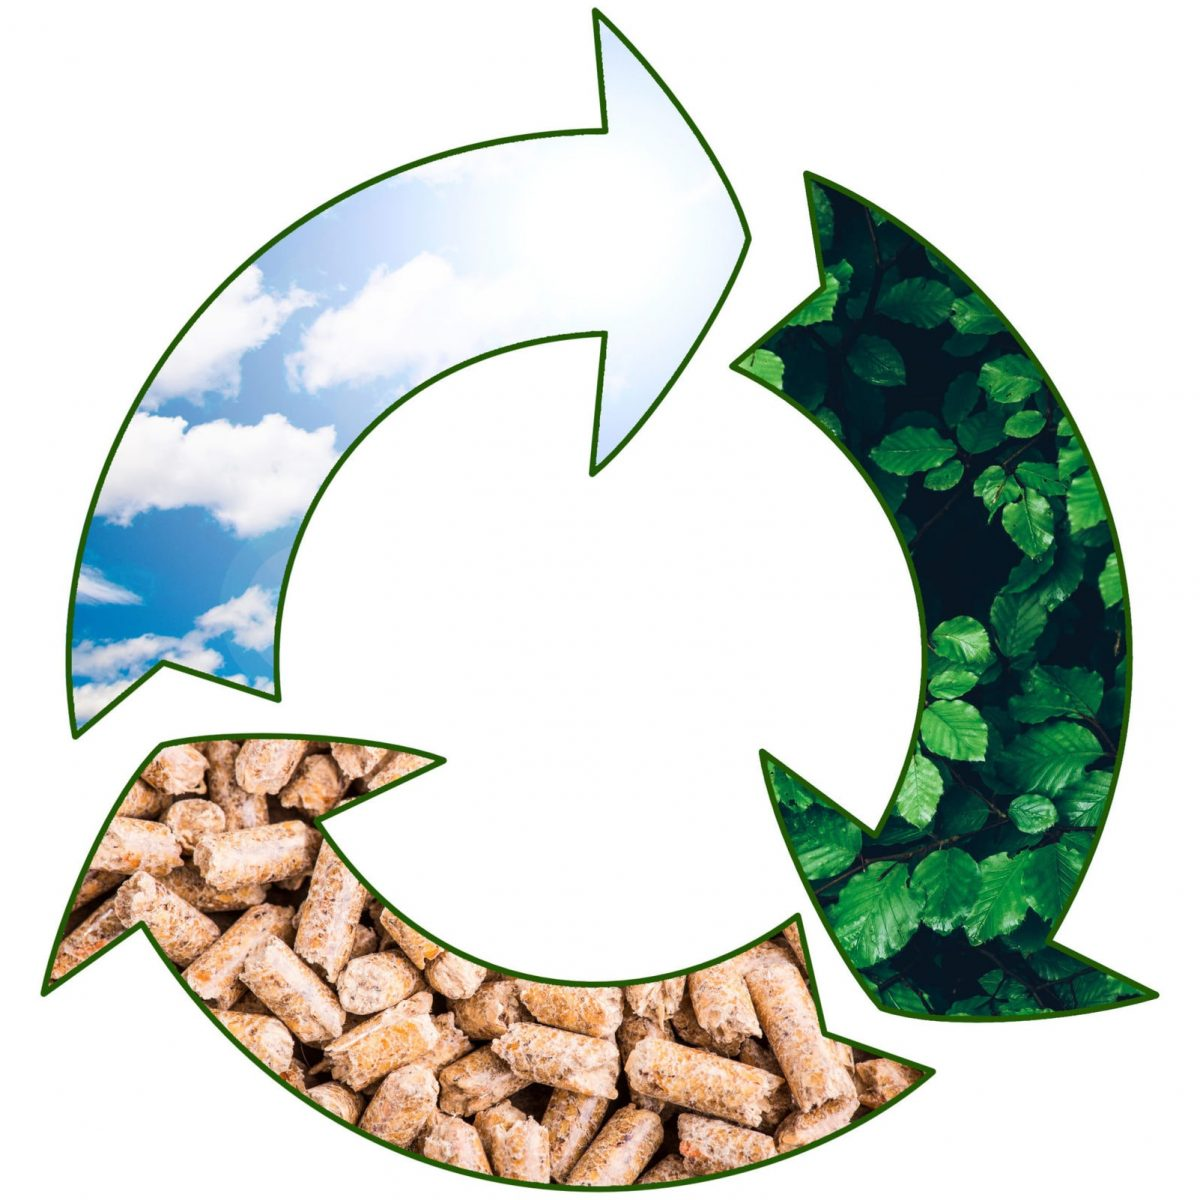 pellet biomass renewable fuel - green renewable sustainable economy